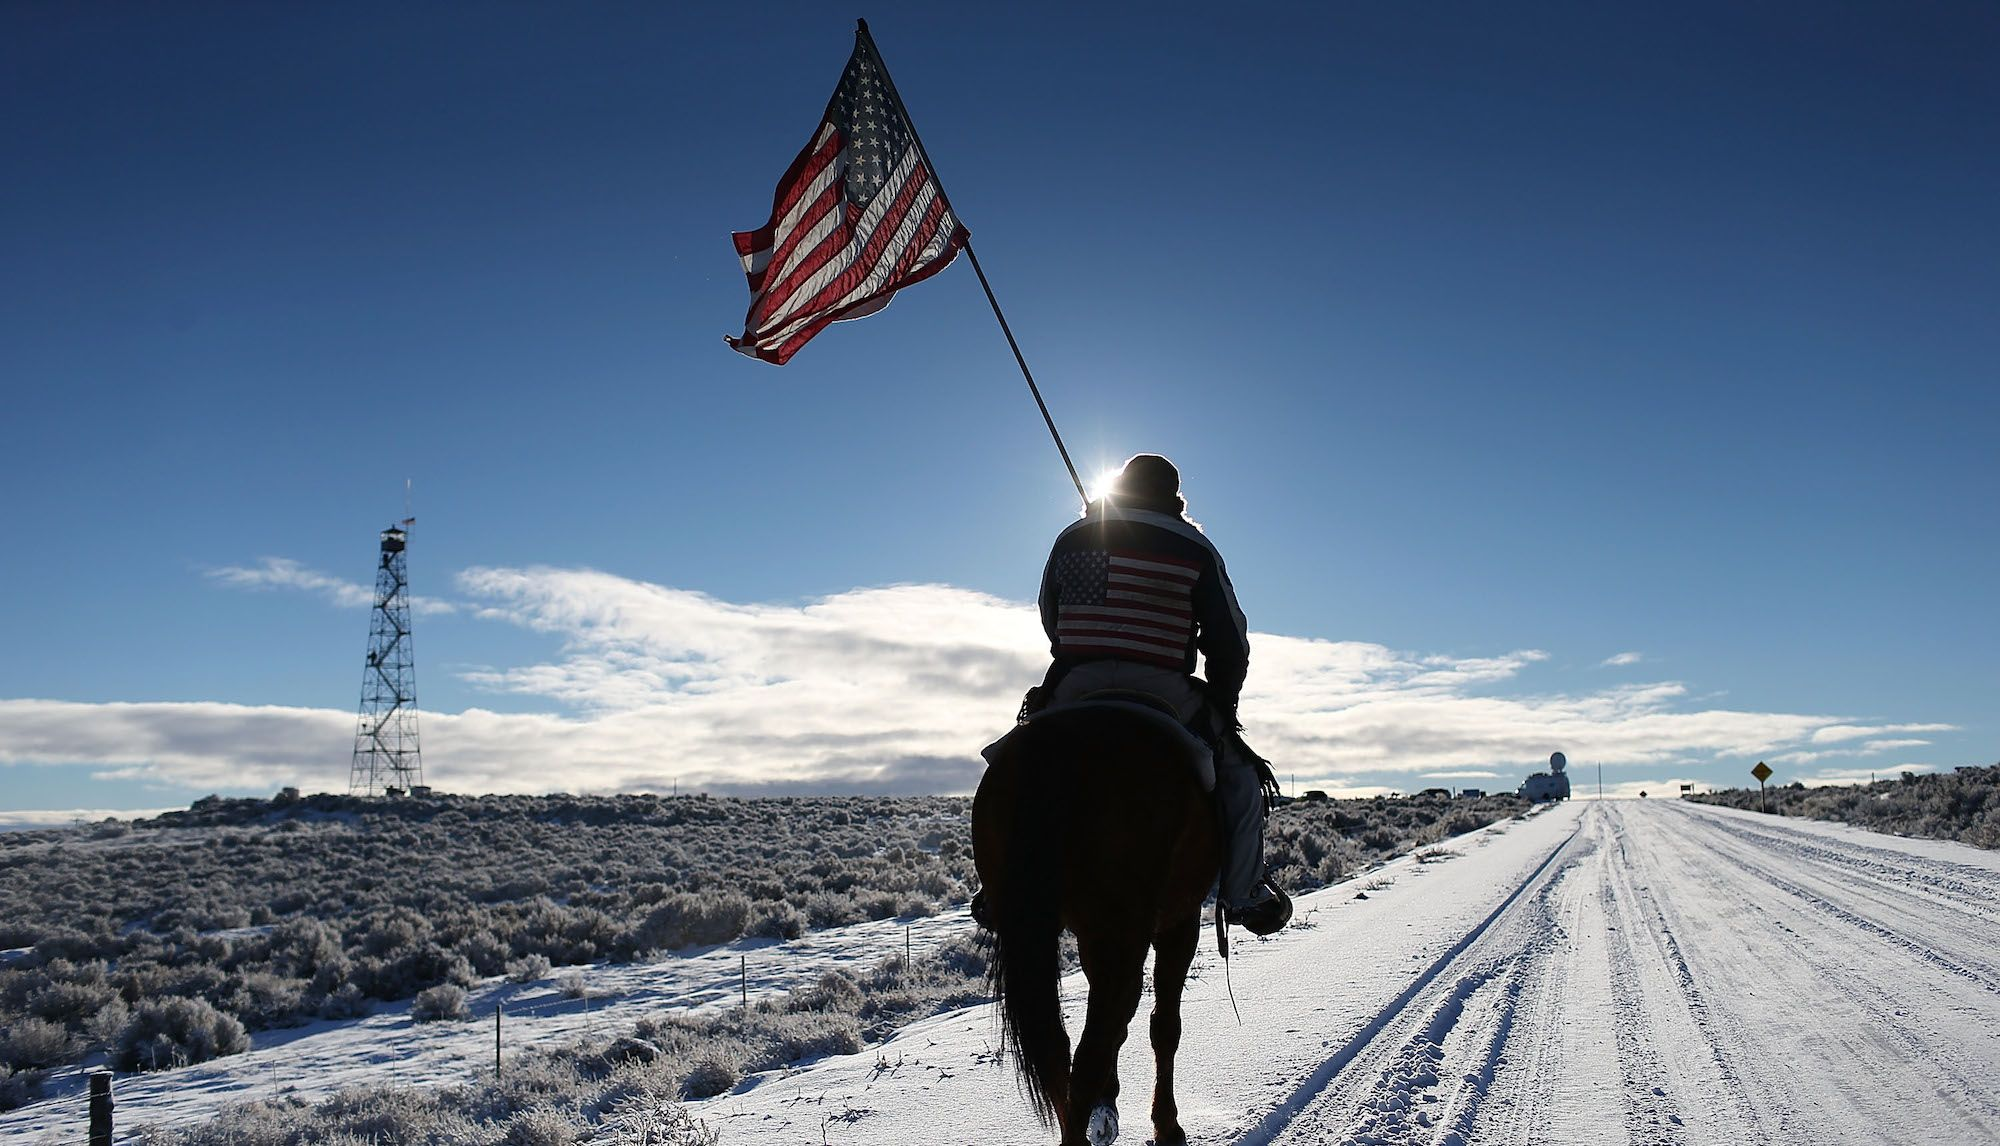 The Oregon Militia Is Stealing From All of Us